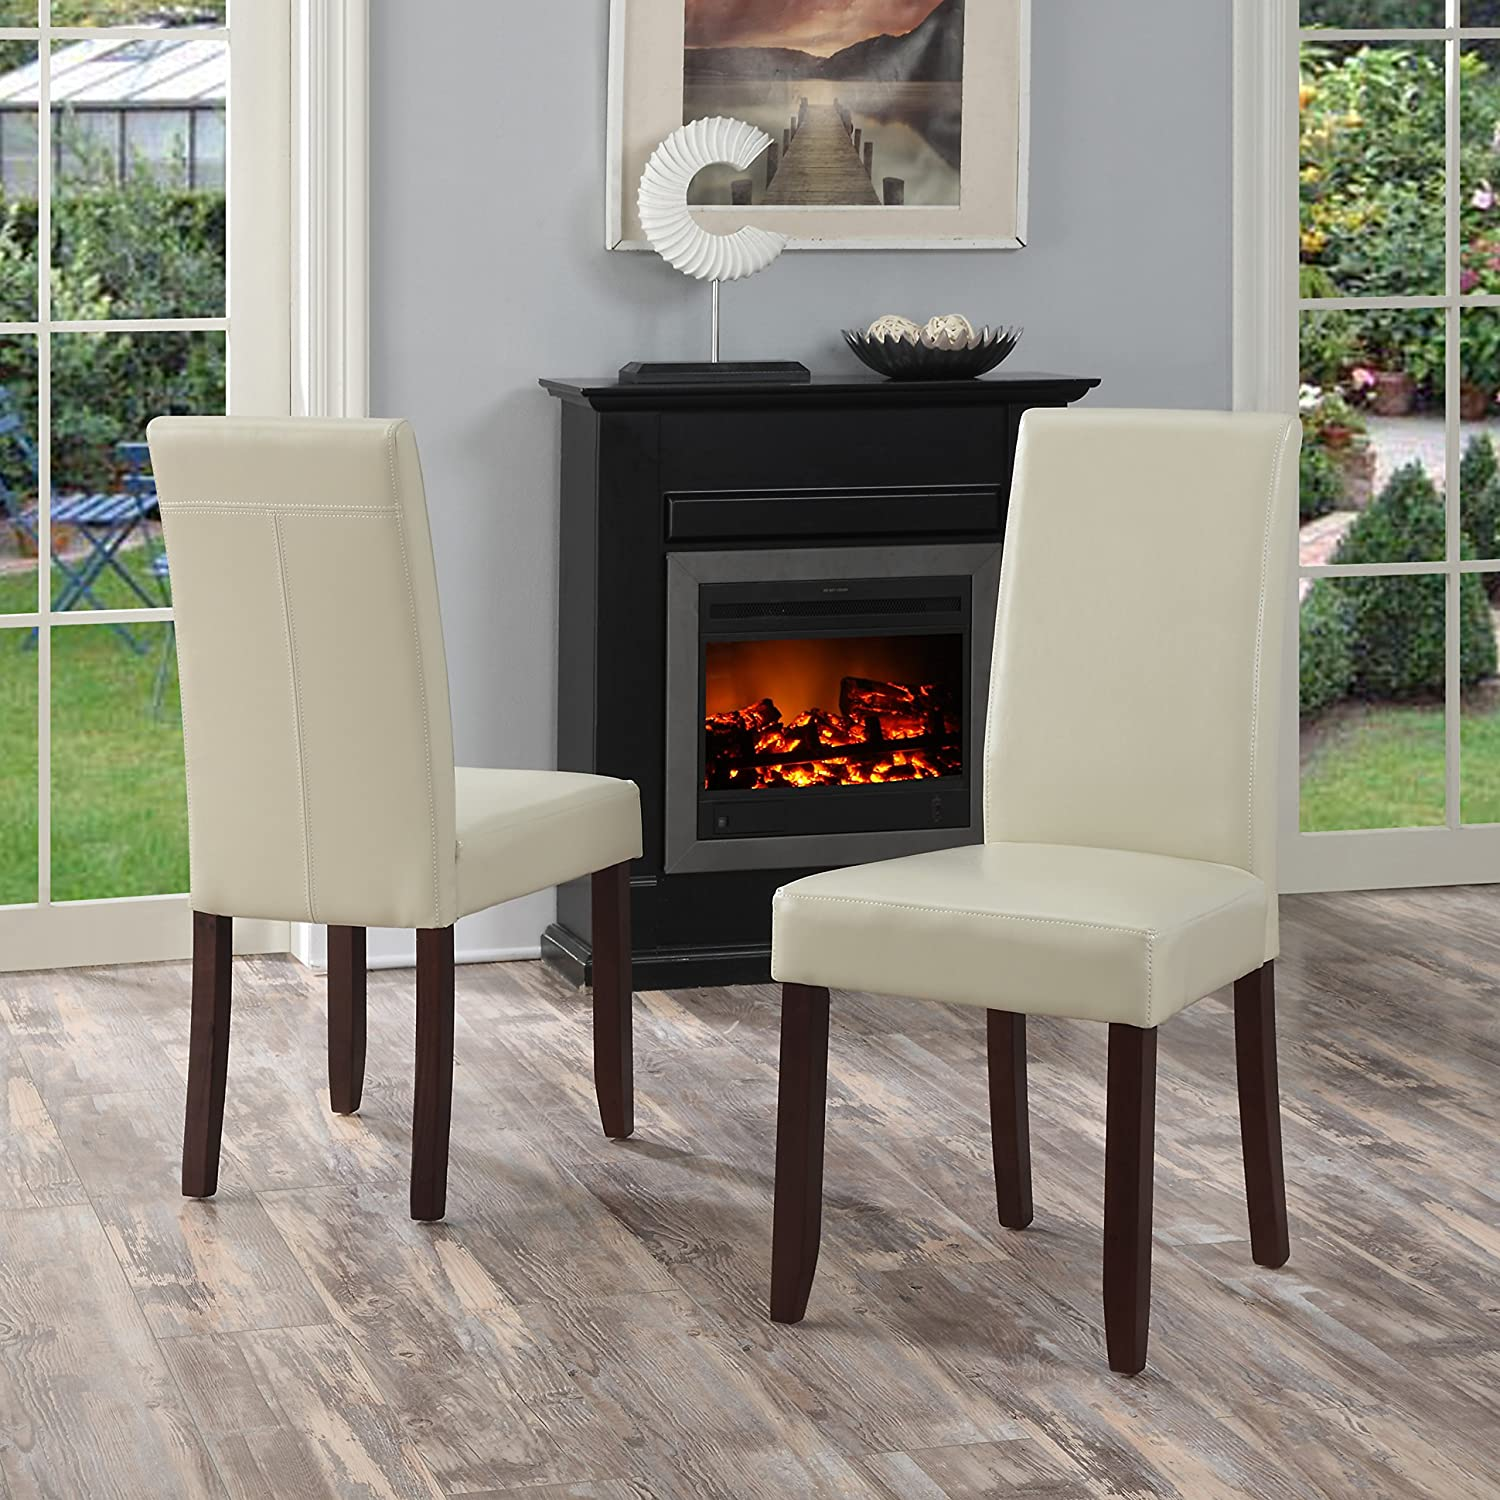 parson koket guilty anastasia upholstery pleasures luxury chair by dining big zoom